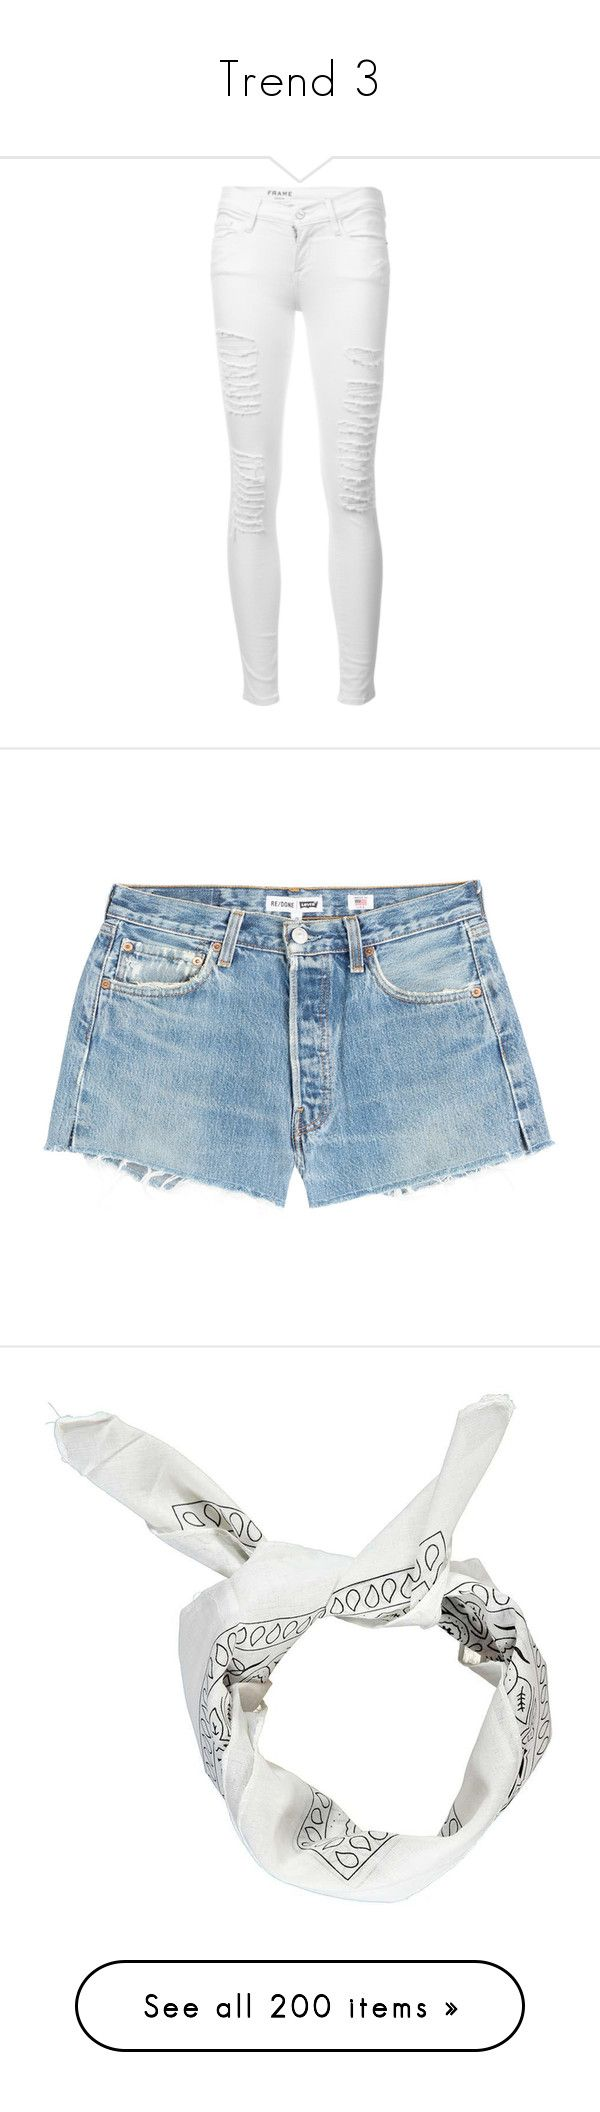 """""""Trend 3"""" by qveenkandie ❤ liked on Polyvore featuring jeans, pants, bottoms, calças, white, ripped jeans, white skinny jeans, destroyed skinny jeans, white cropped skinny jeans and white ripped skinny jeans"""